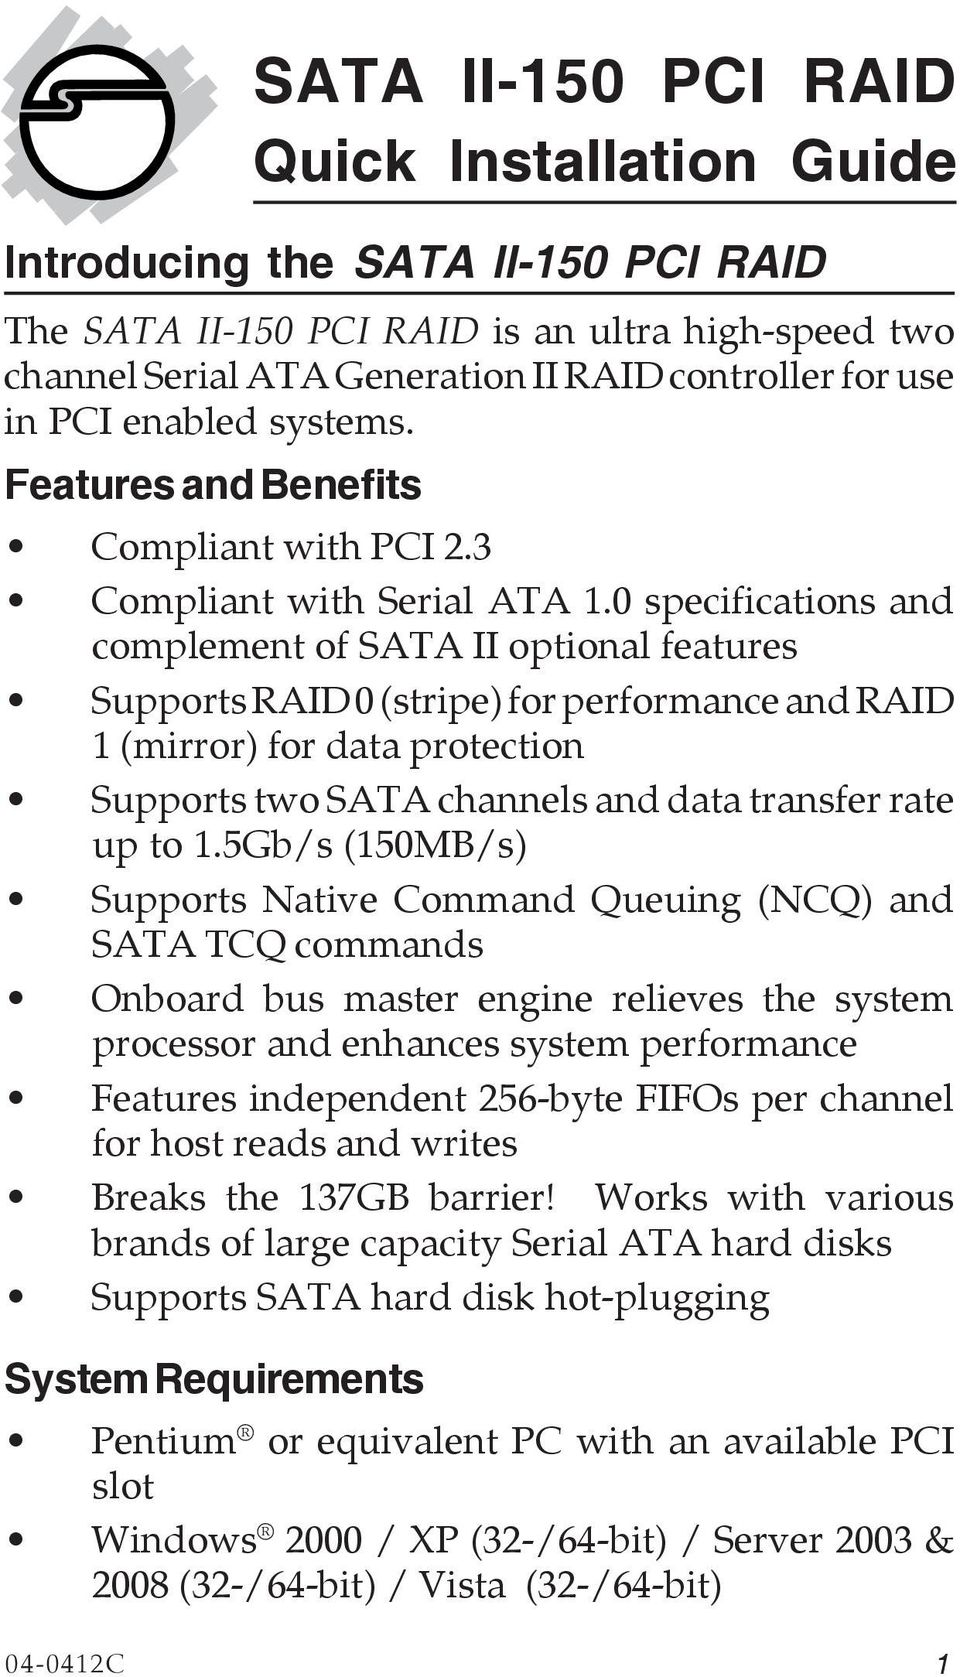 0 specifications and complement of SATA II optional features Supports RAID 0 (stripe) for performance and RAID 1 (mirror) for data protection Supports two SATA channels and data transfer rate up to 1.